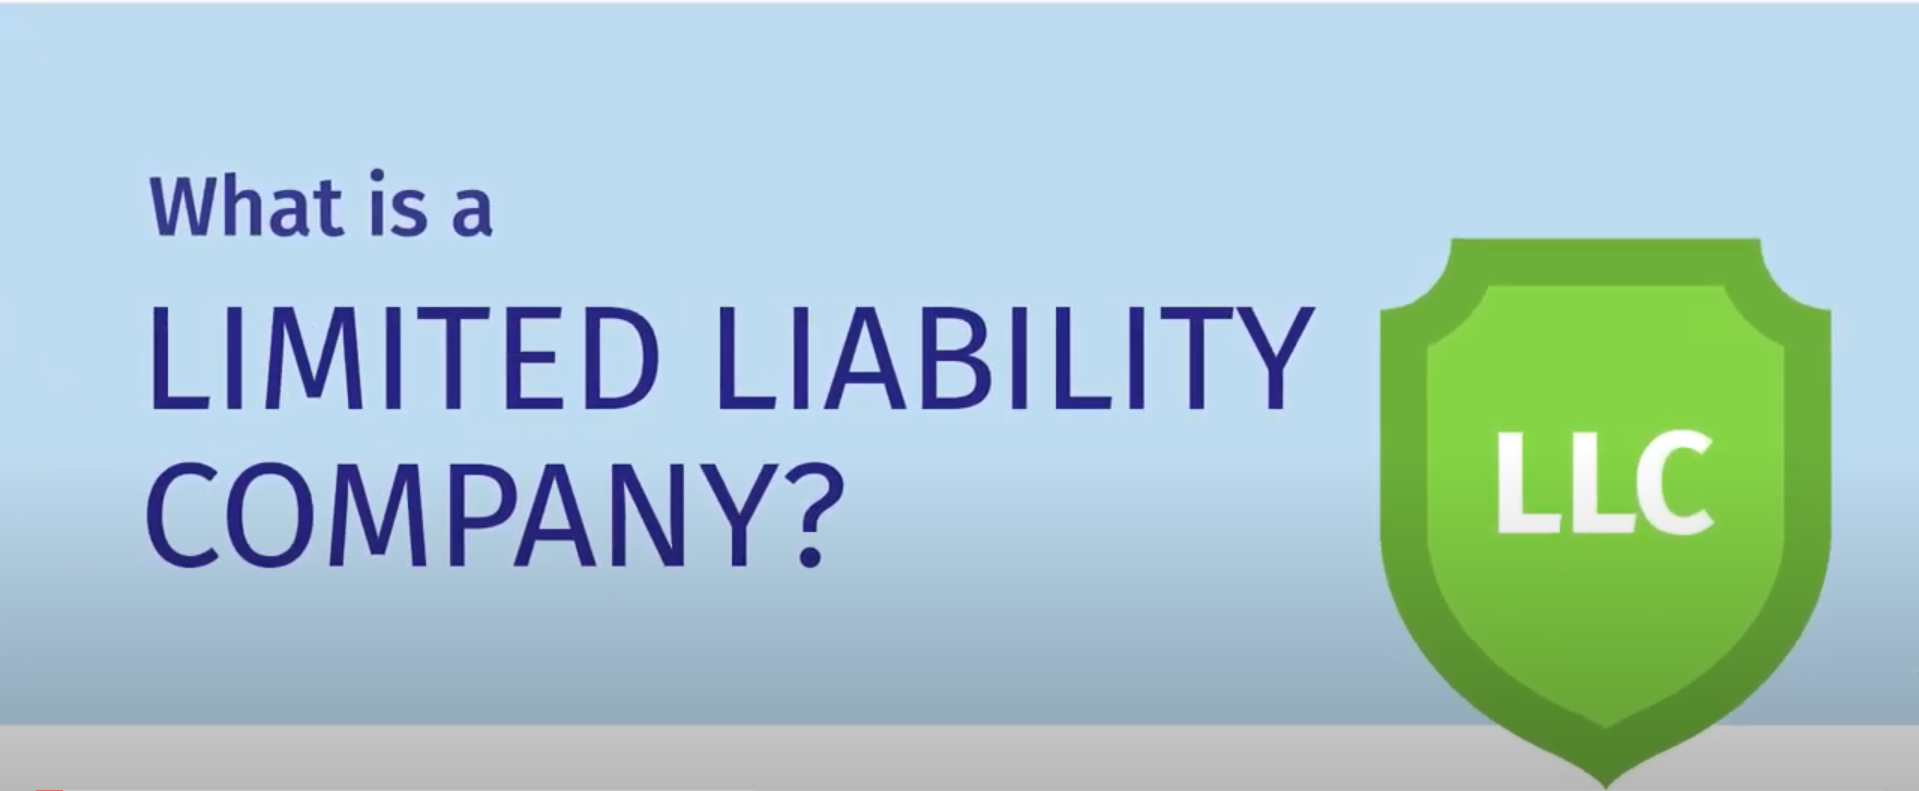 what is a limited liability company